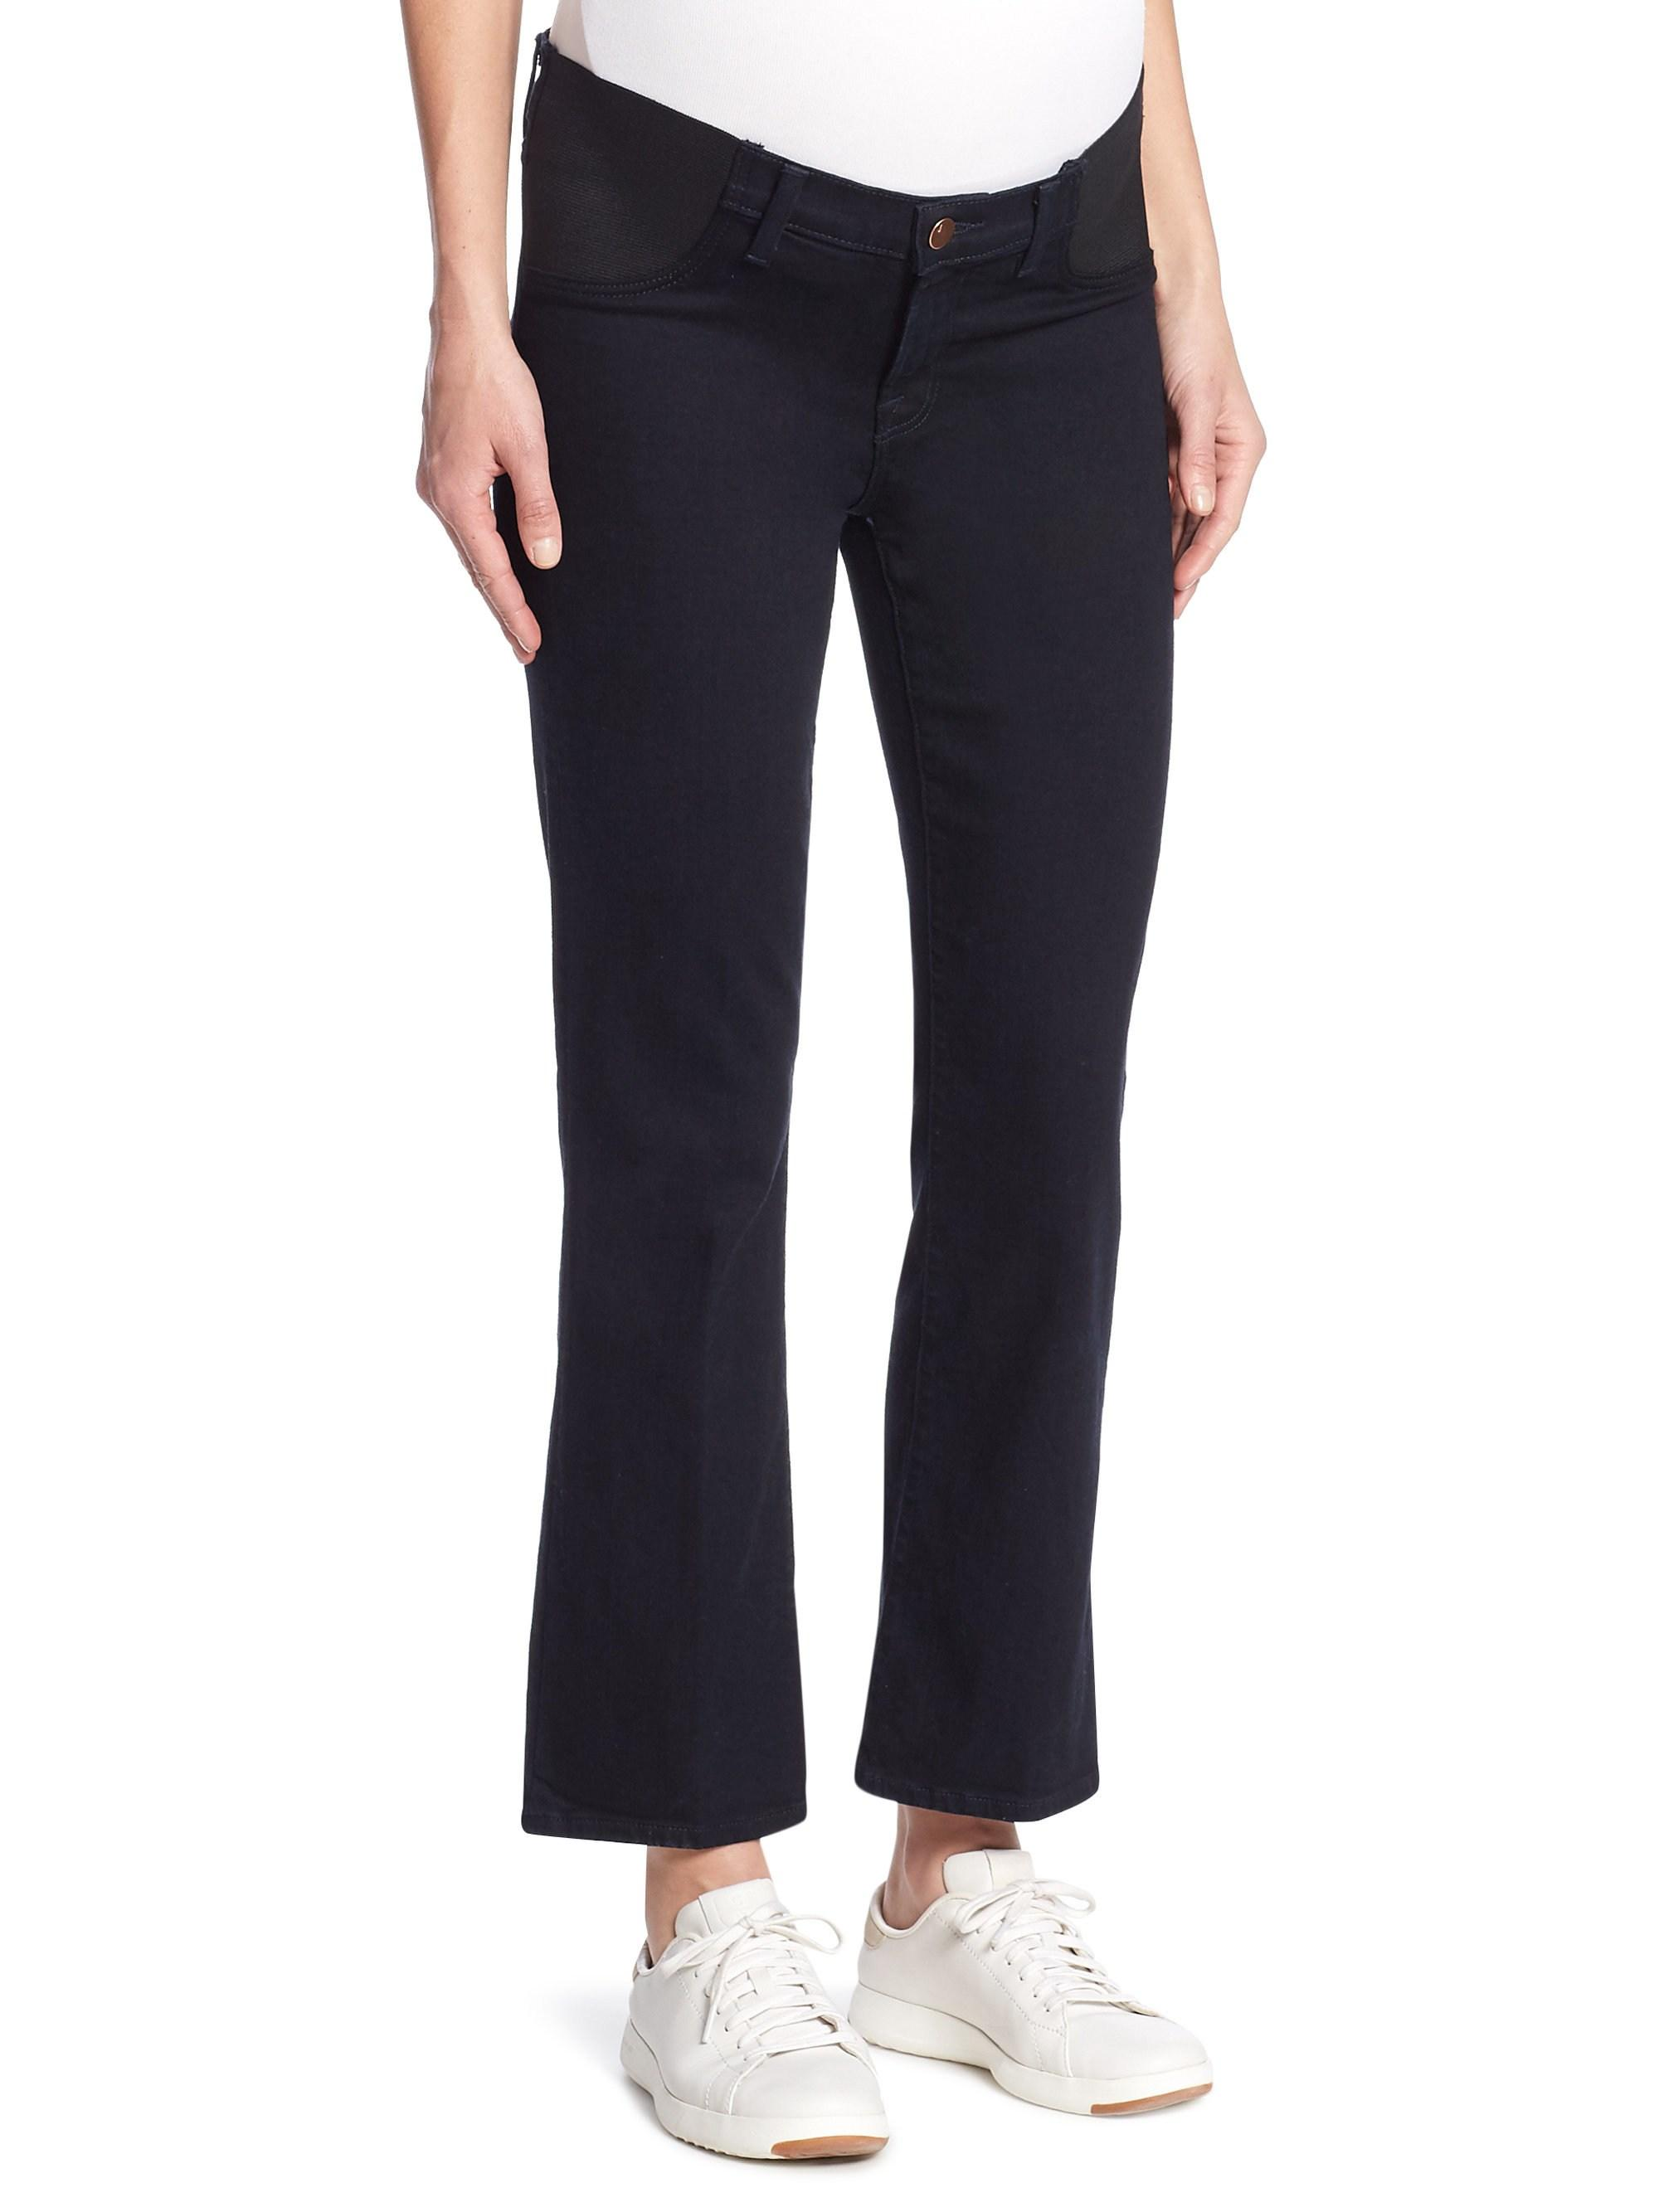 5e7cd0353f96 Lyst - J Brand Women s Mama J Selena Cropped Bootcut Maternity Jeans ...